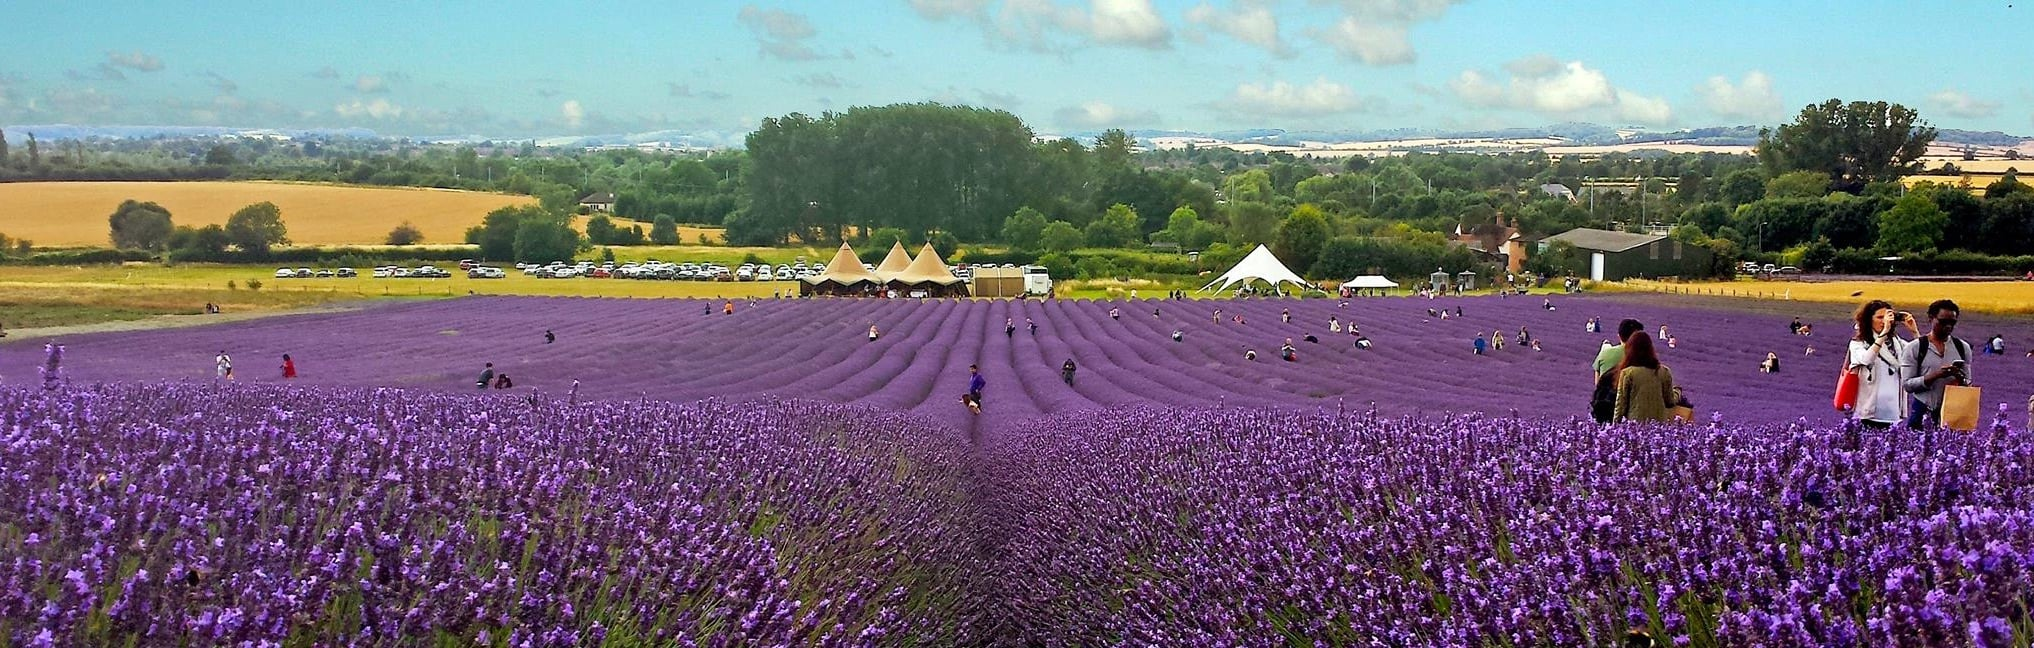 hitchin lavender opening, lavender fields, lavender fields england, lavender field hertfordshire, lavender near bucks, visit lavender fields